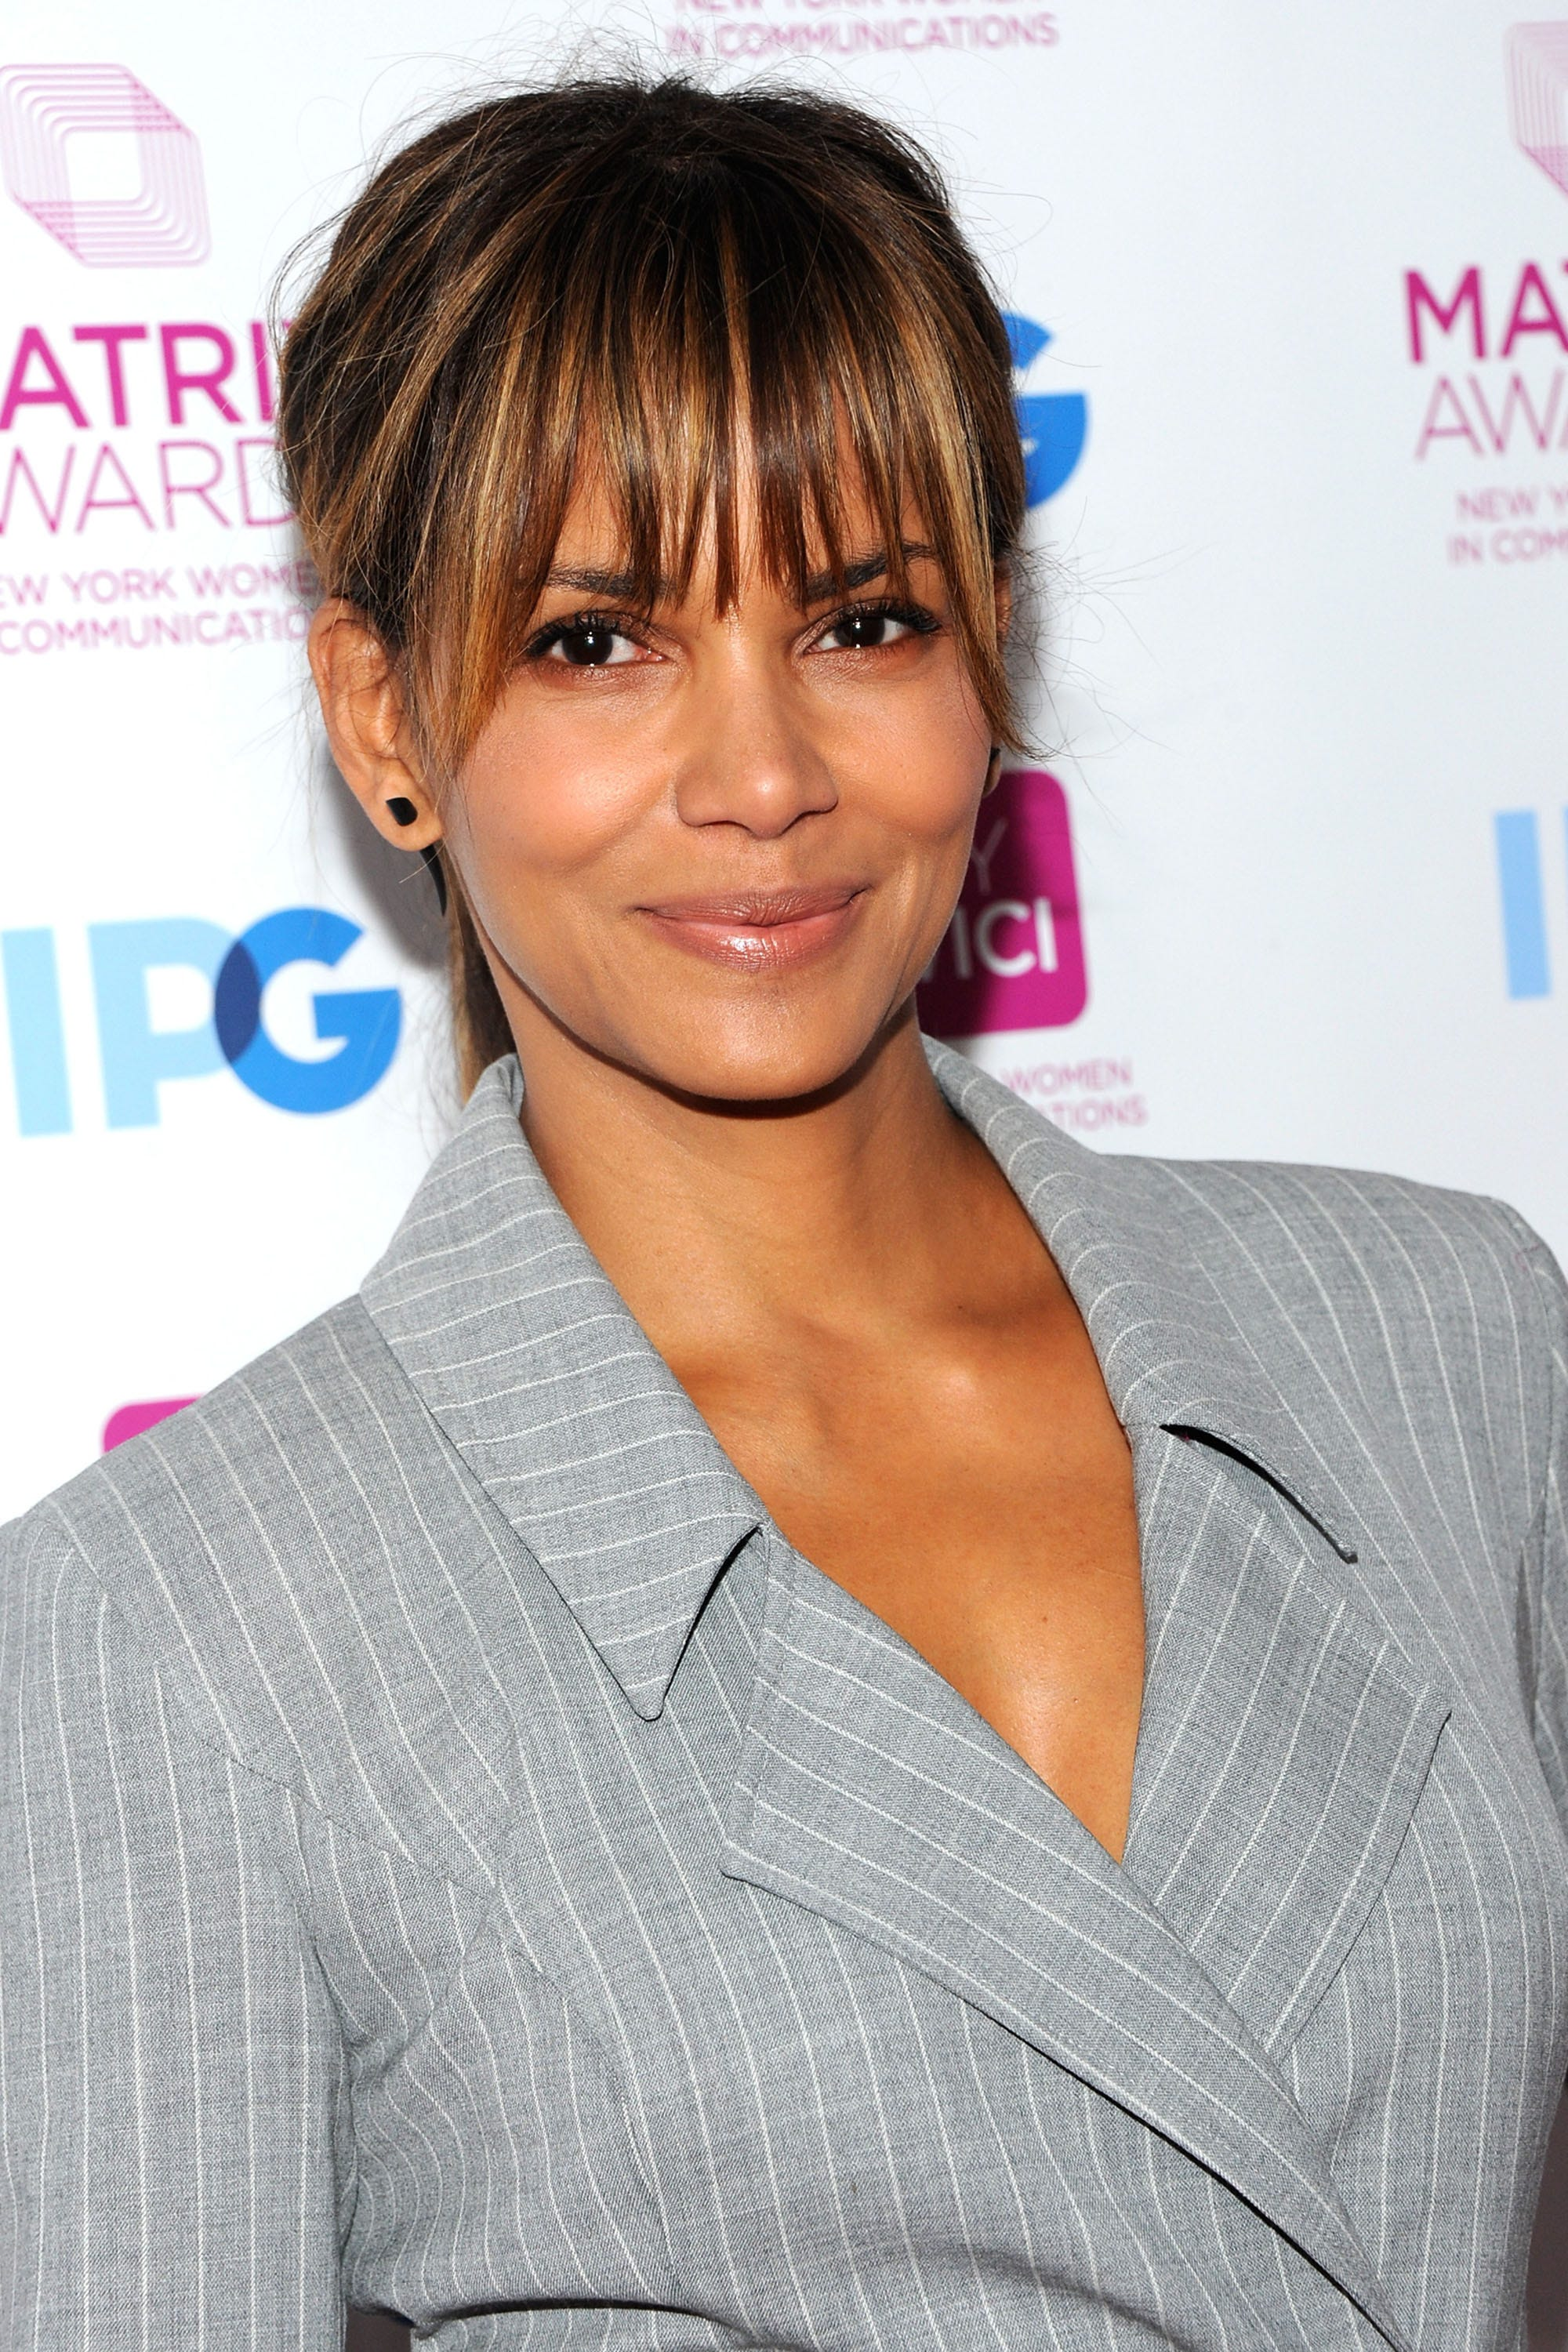 Best Types Of Fringes 2020: Celeb Hairstyle Inspiration